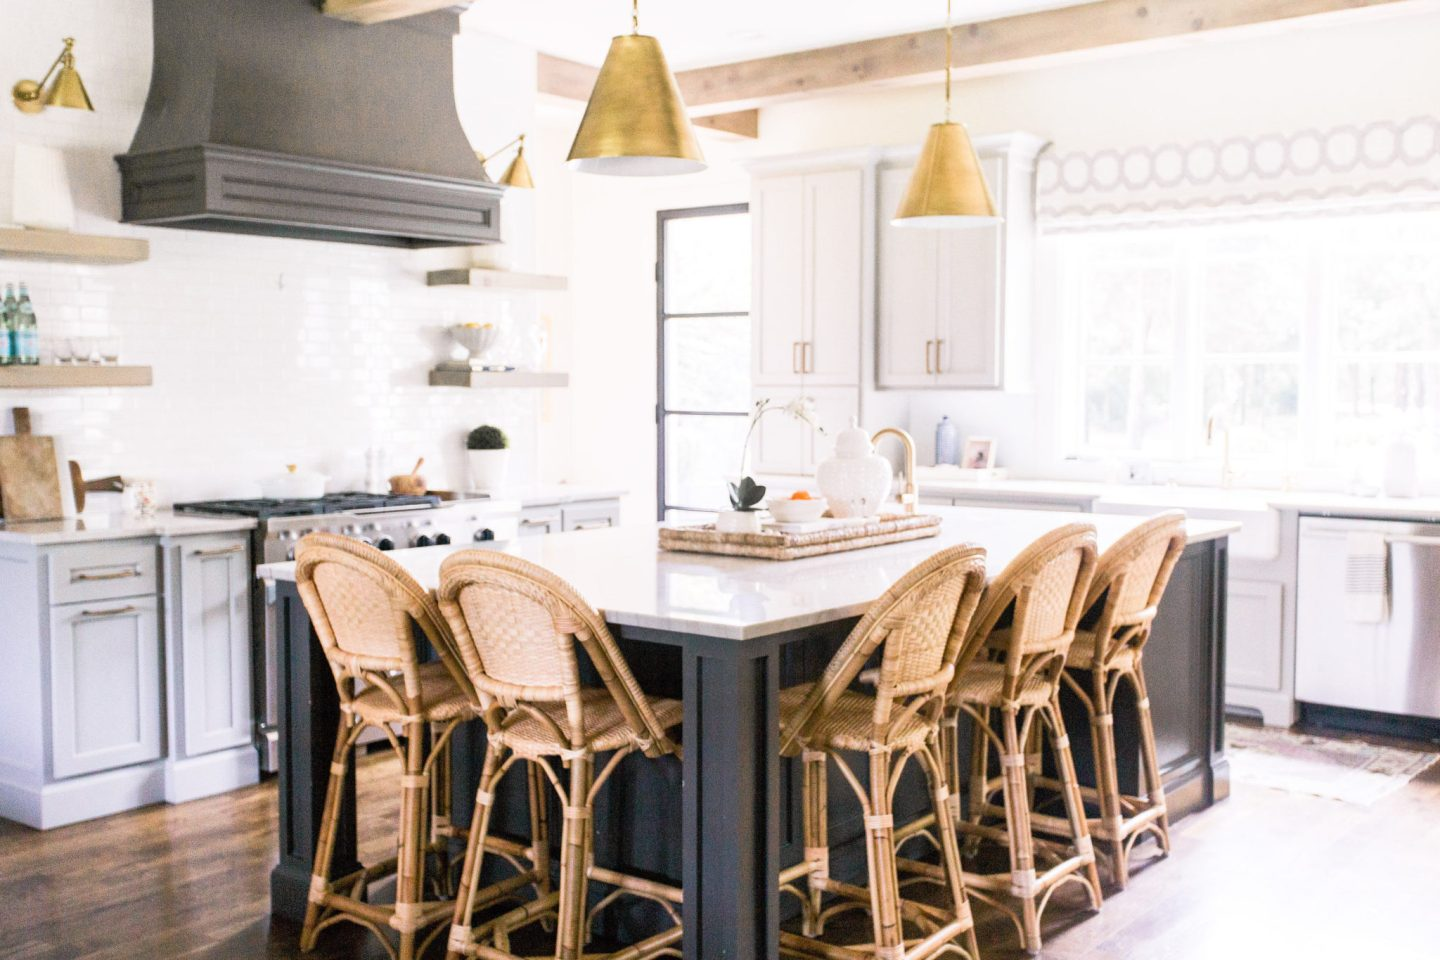 Kitchen Decor Ideas On A Budget Curls And Cashmere